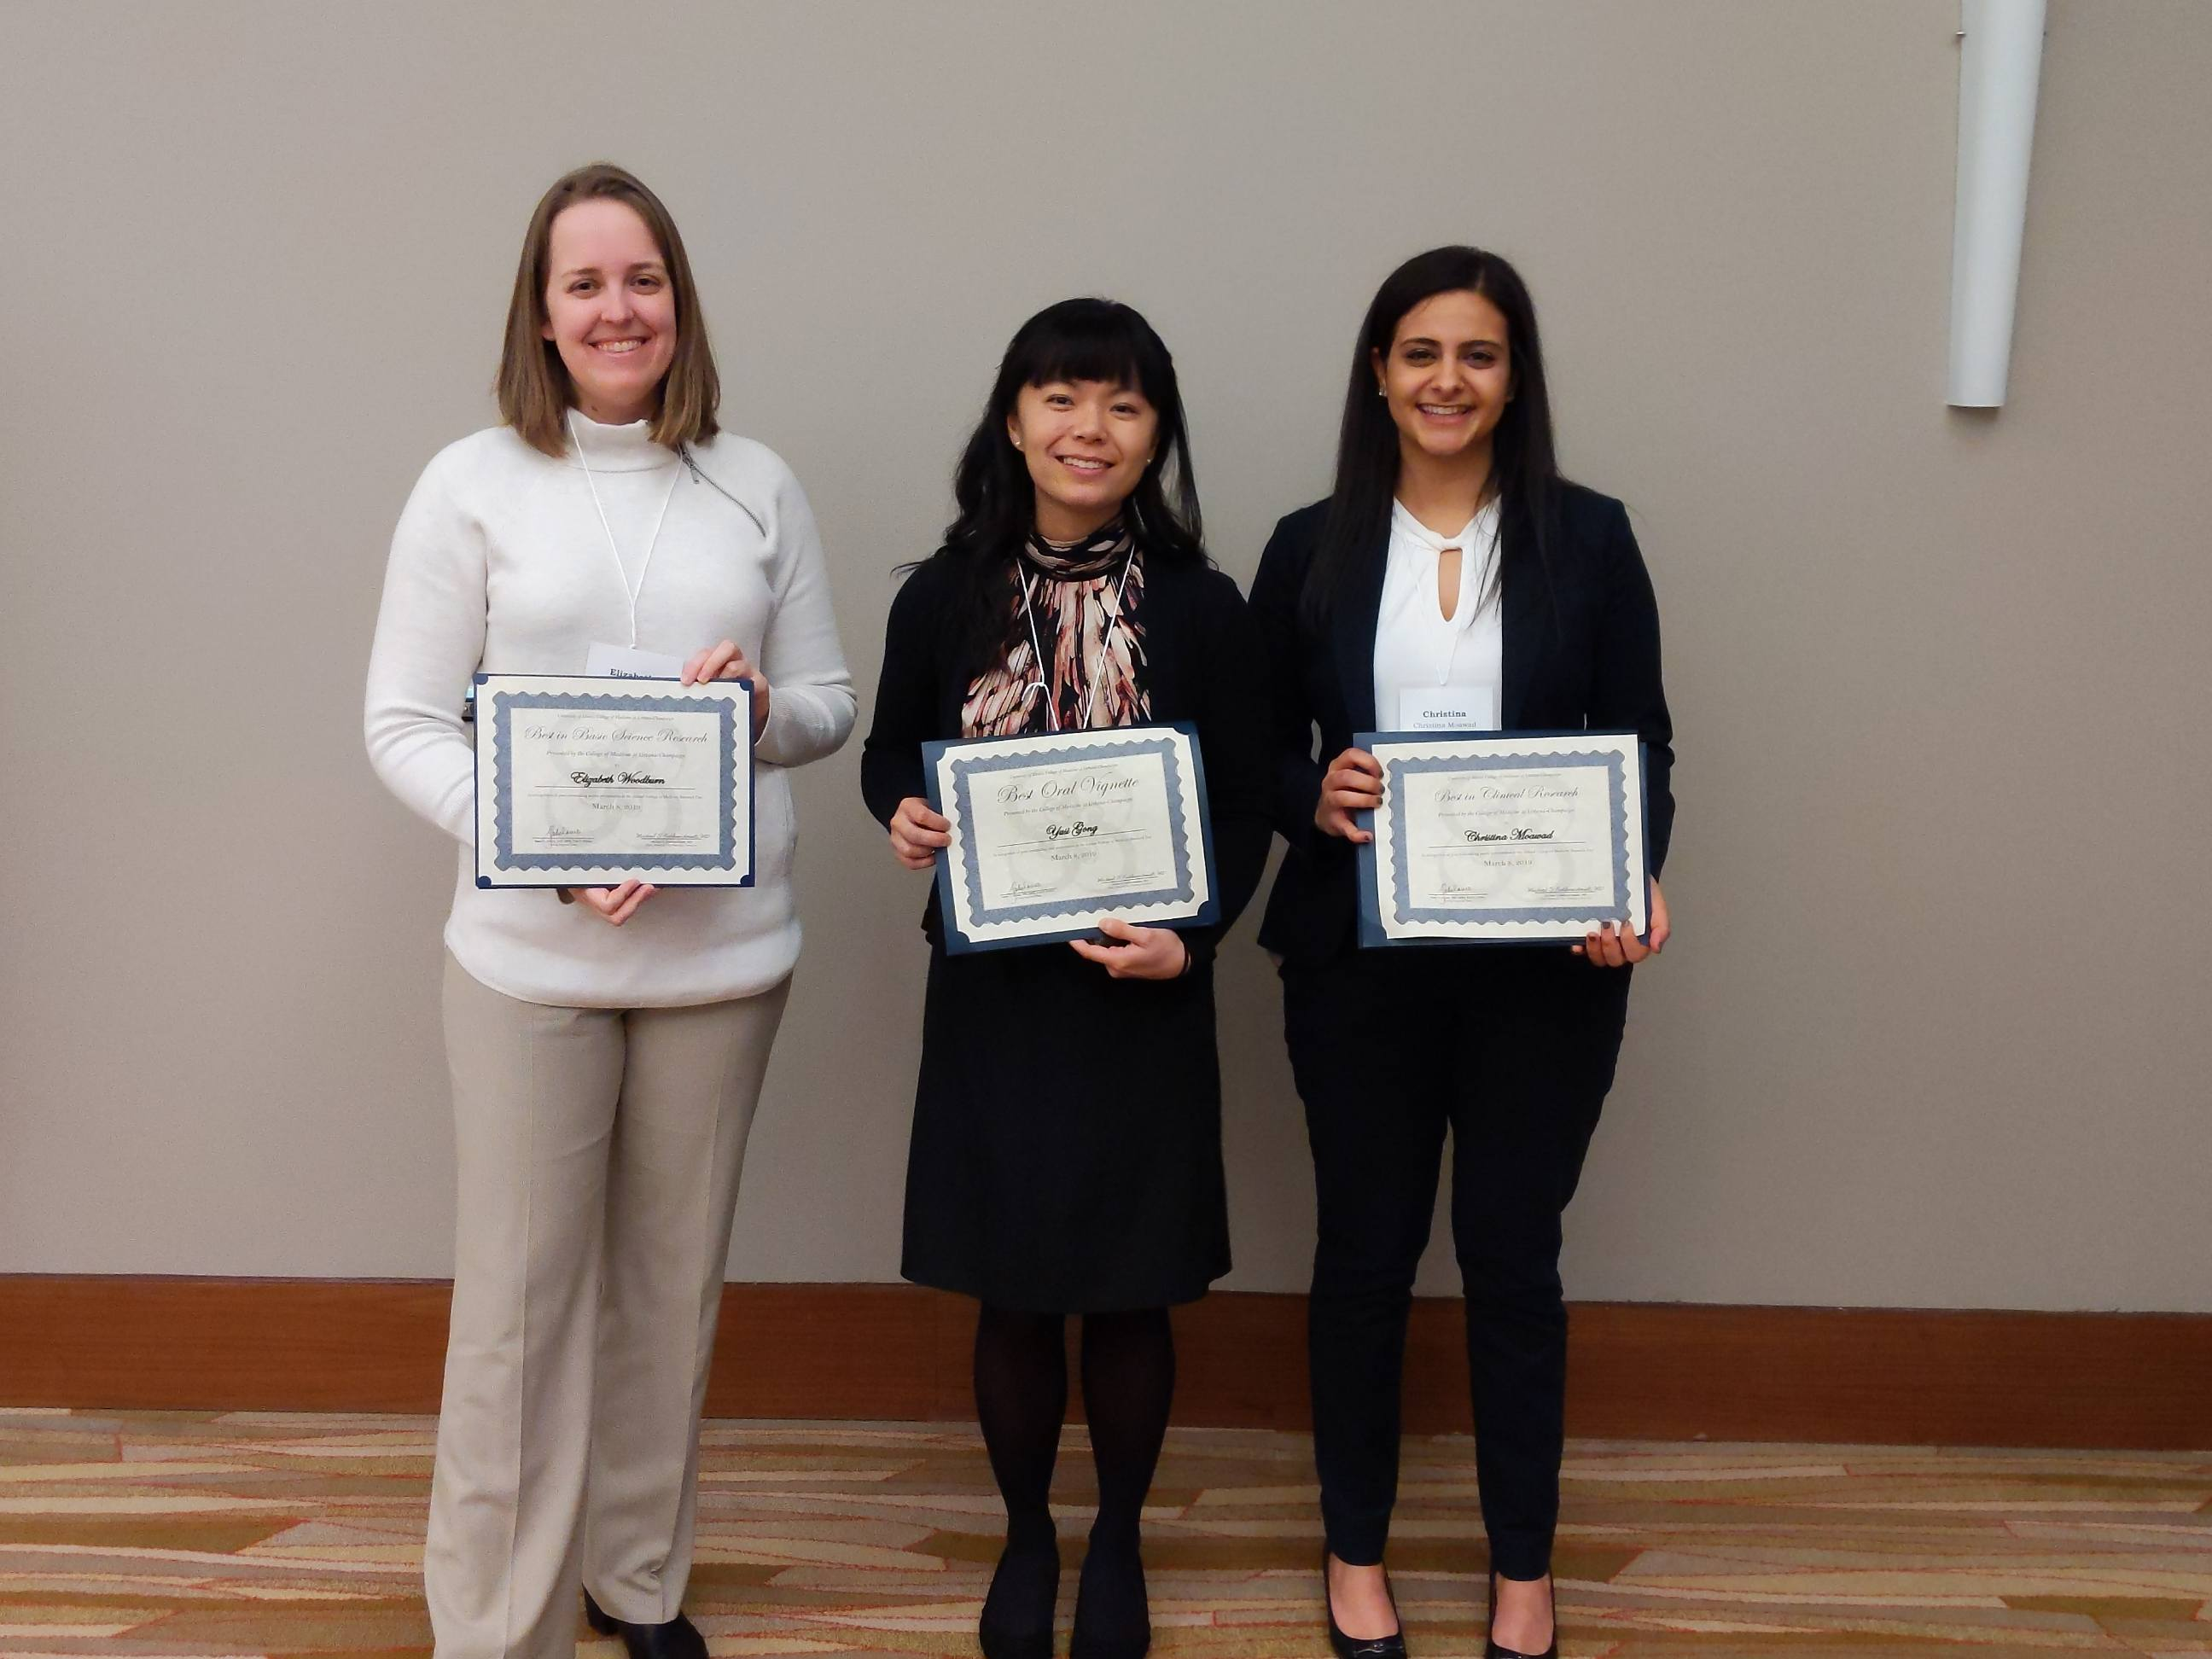 Carle Illinois students, Elizabeth Woodburn, Yusi Gong, and Christina Moawad, receiving their awards at the University of Illinois College of Medicine at Urbana-Champaign Research Day.